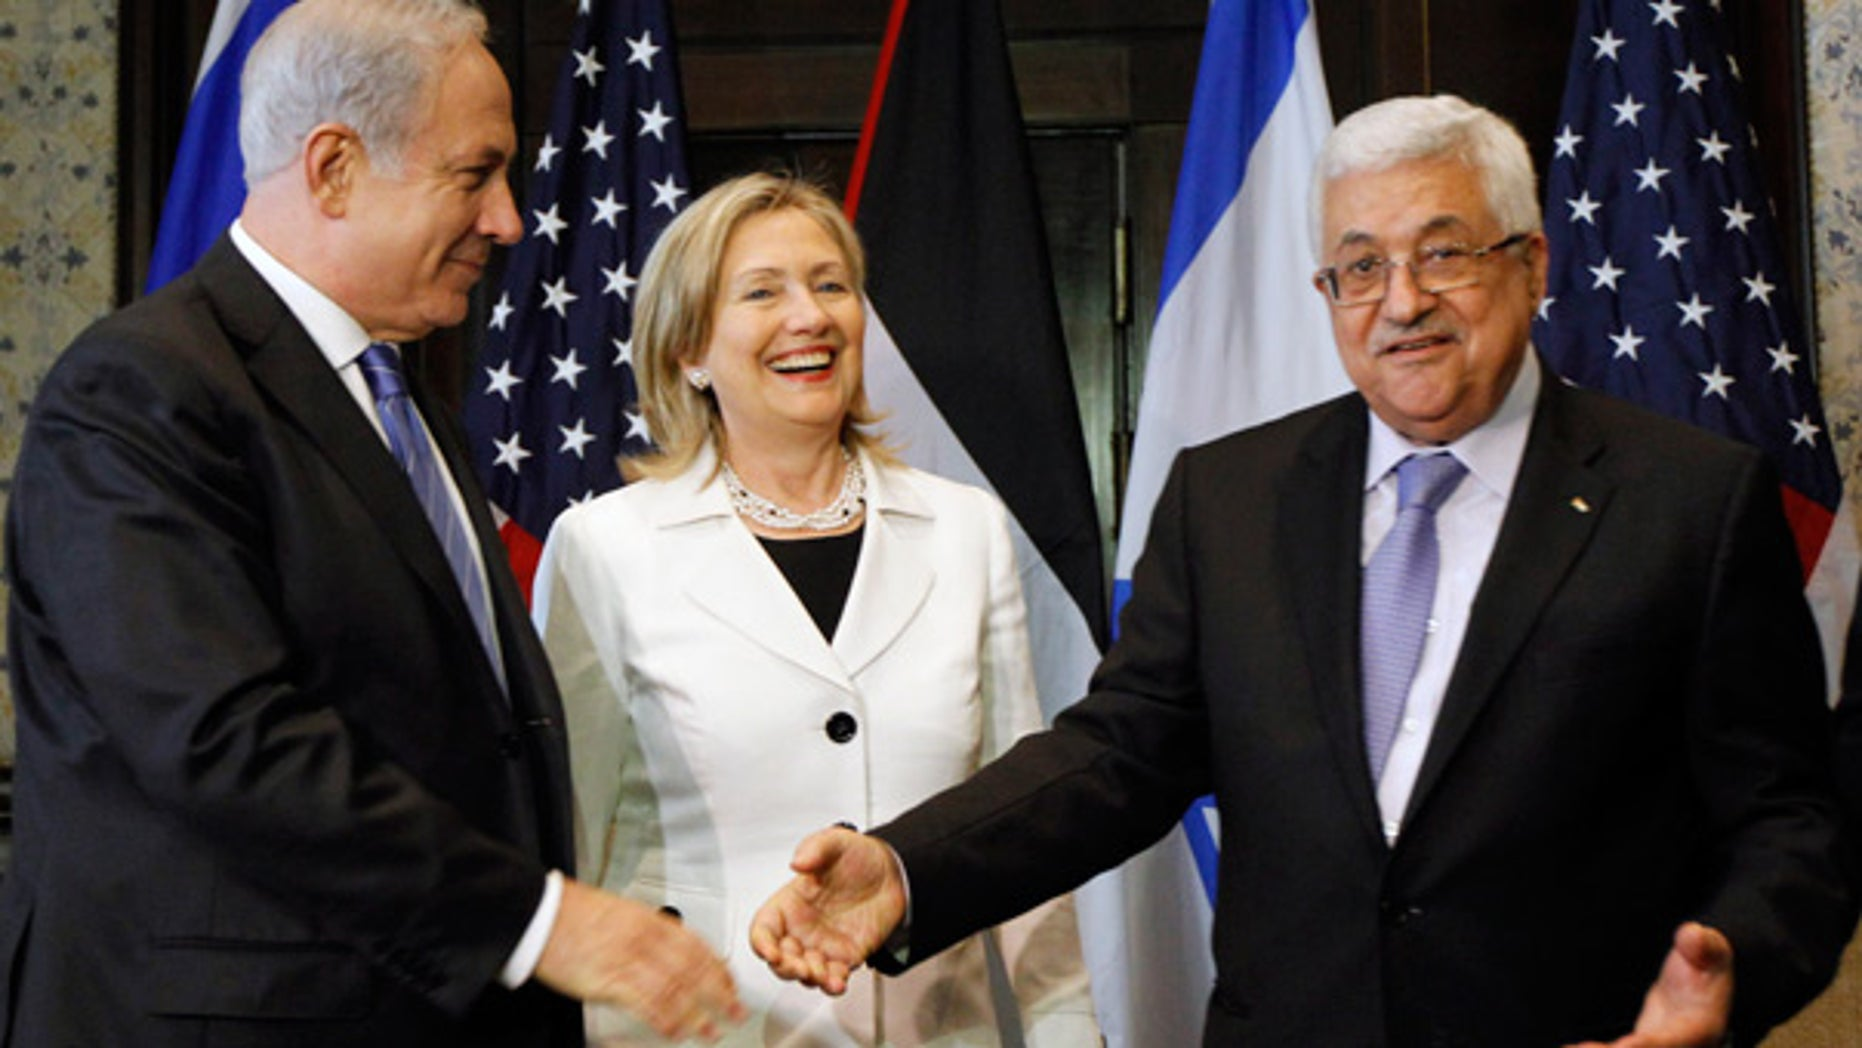 Sept. 14: Israeli Prime Minister Benjamin Netanyahu, left, shakes hands with Palestinian President Mahmoud Abbas, with Secretary of State Hillary Clinton in Egypt.